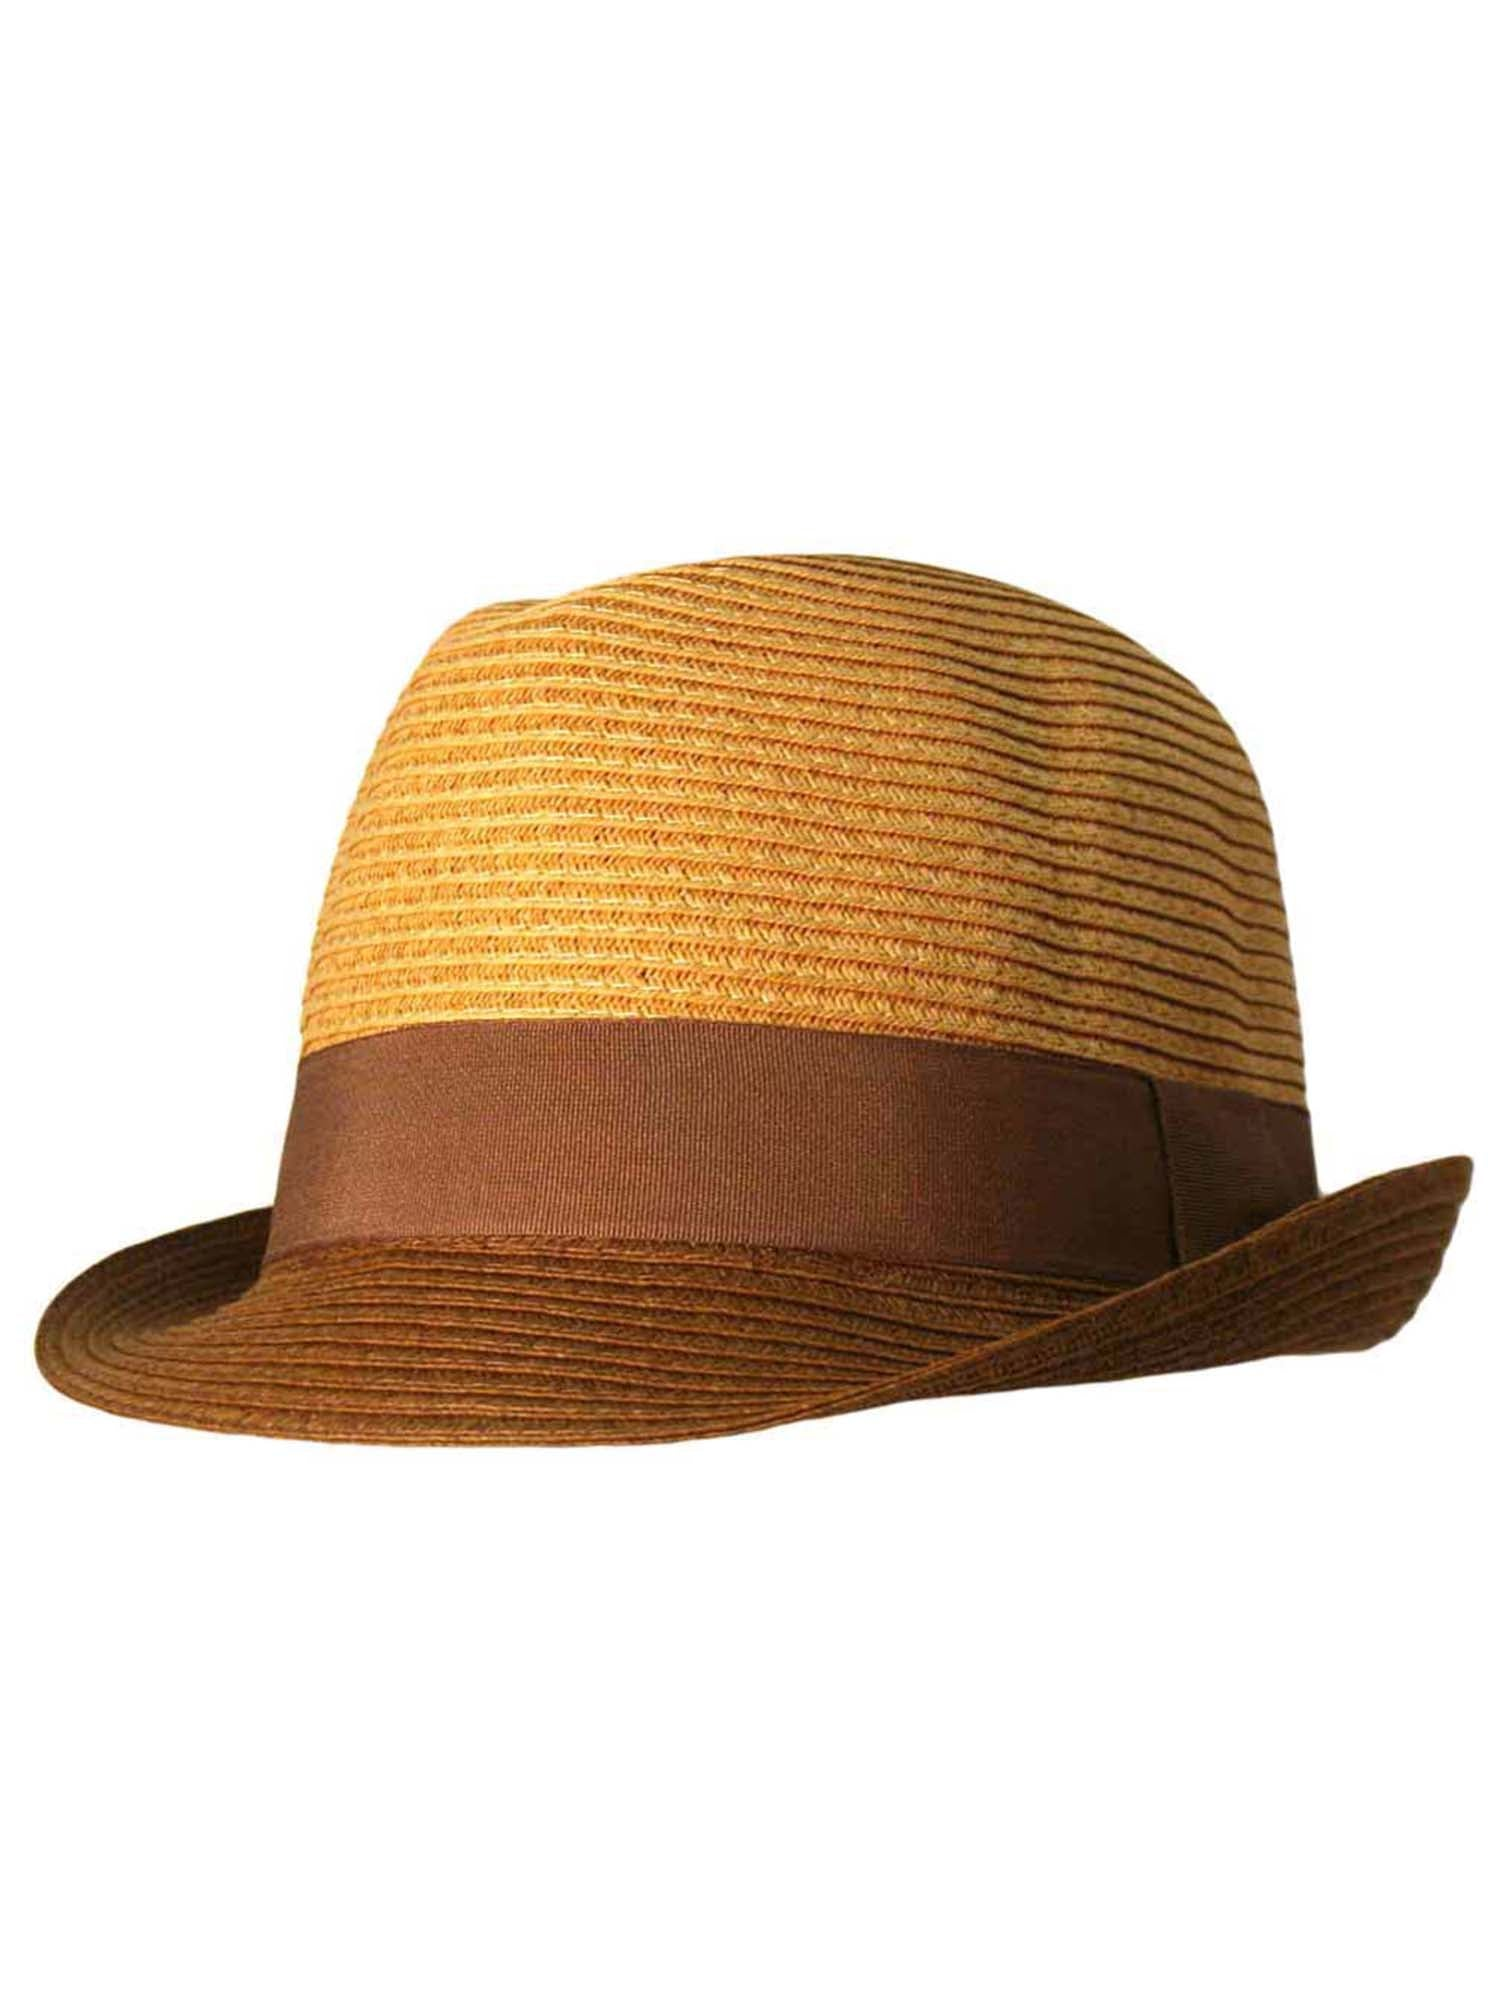 Two-Tone Straw Fedora Hat